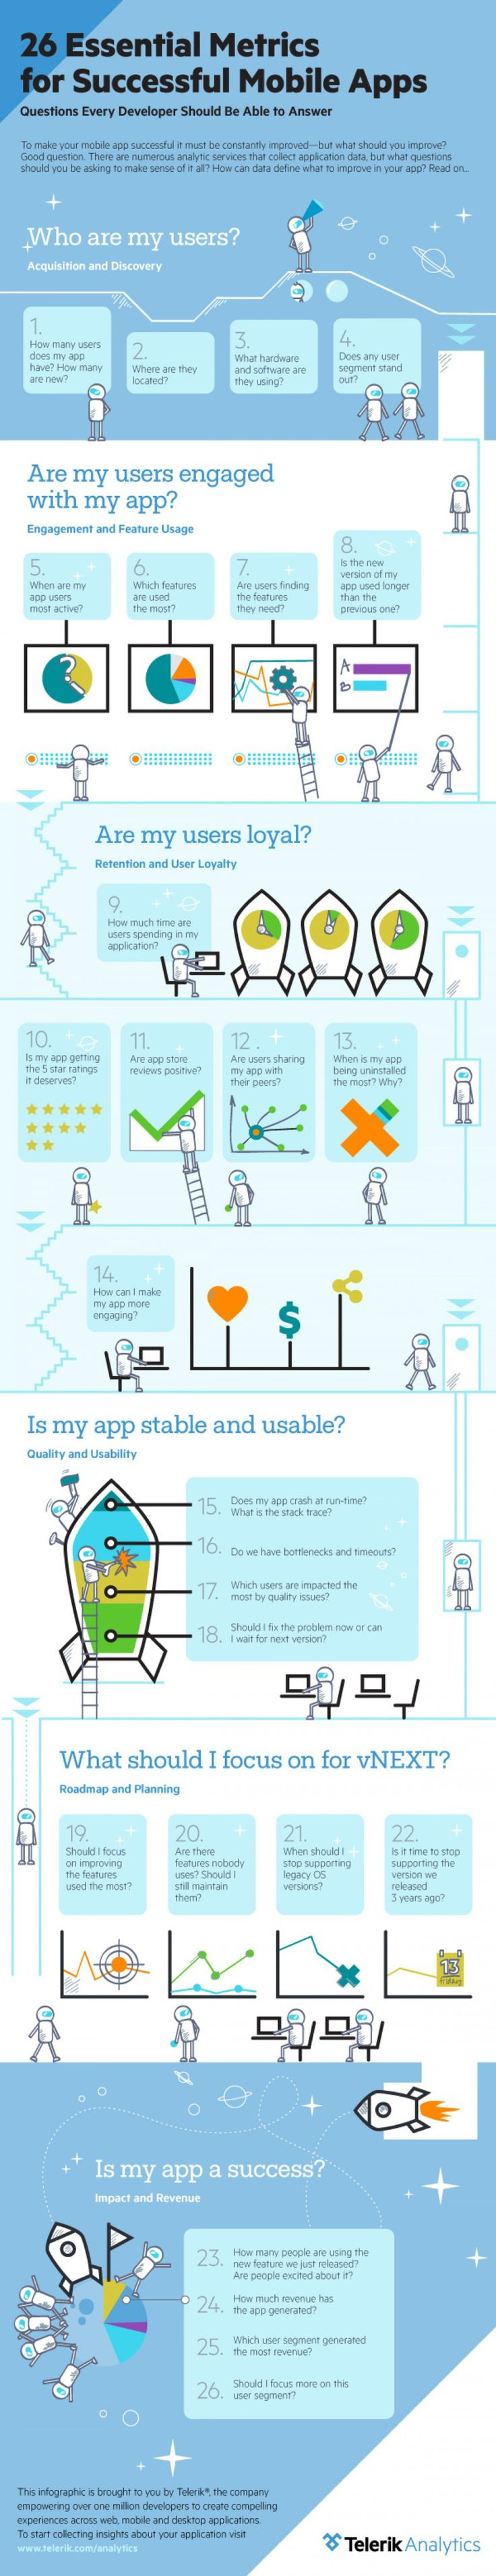 26 Essential metrics for successful Mobile Apps #INFOGRAFIA #INFOGRAPHIC #SOFTWARE